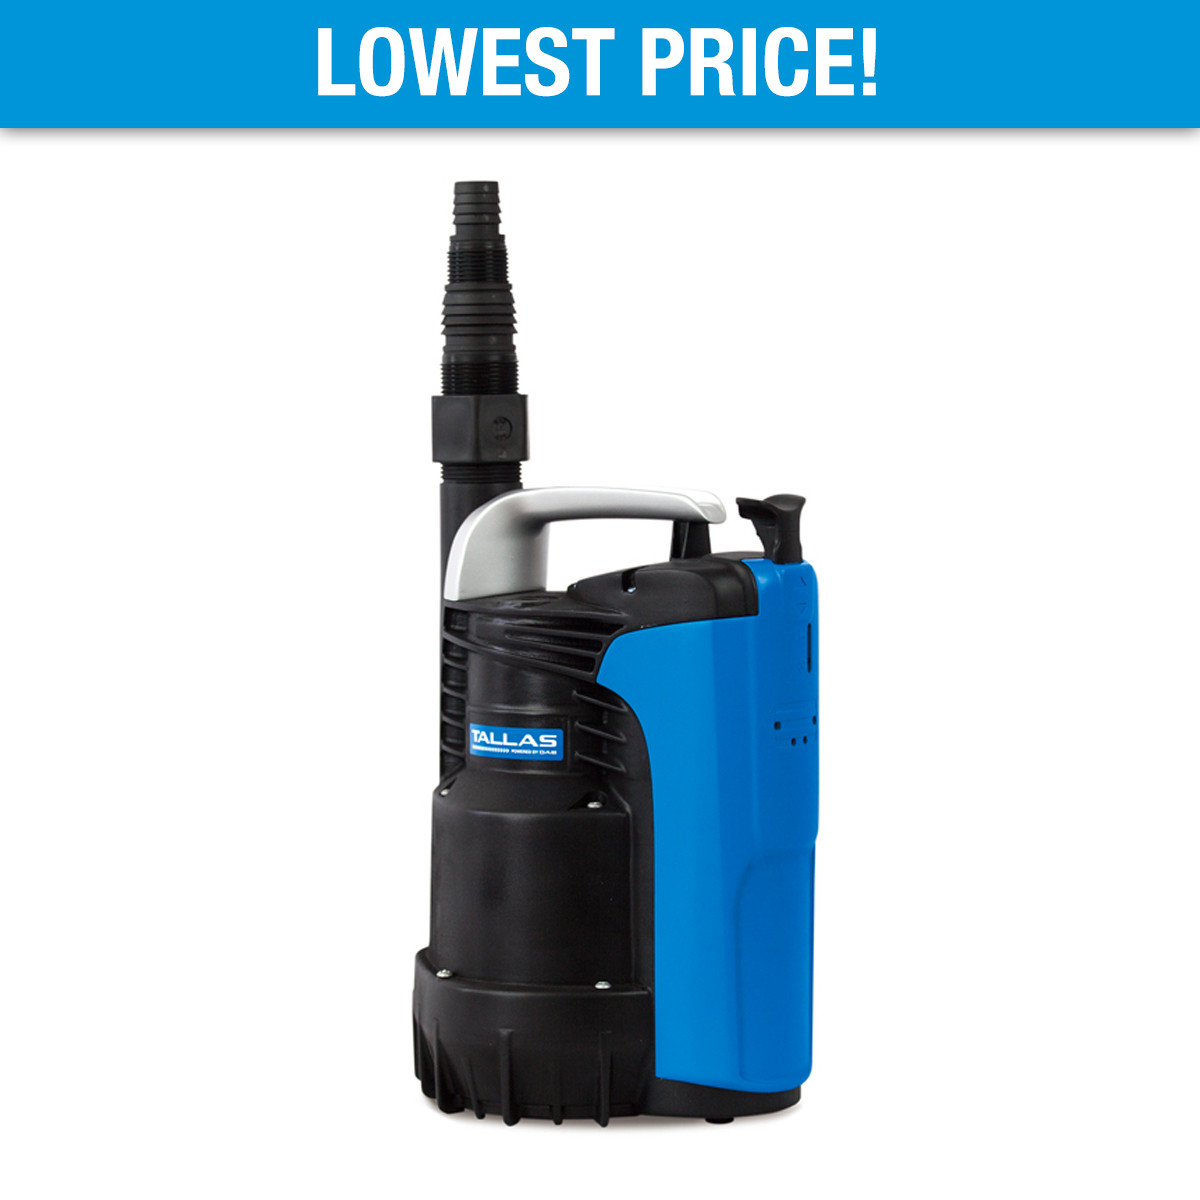 Tallas D-CWP 300 Submersible Utility Pump